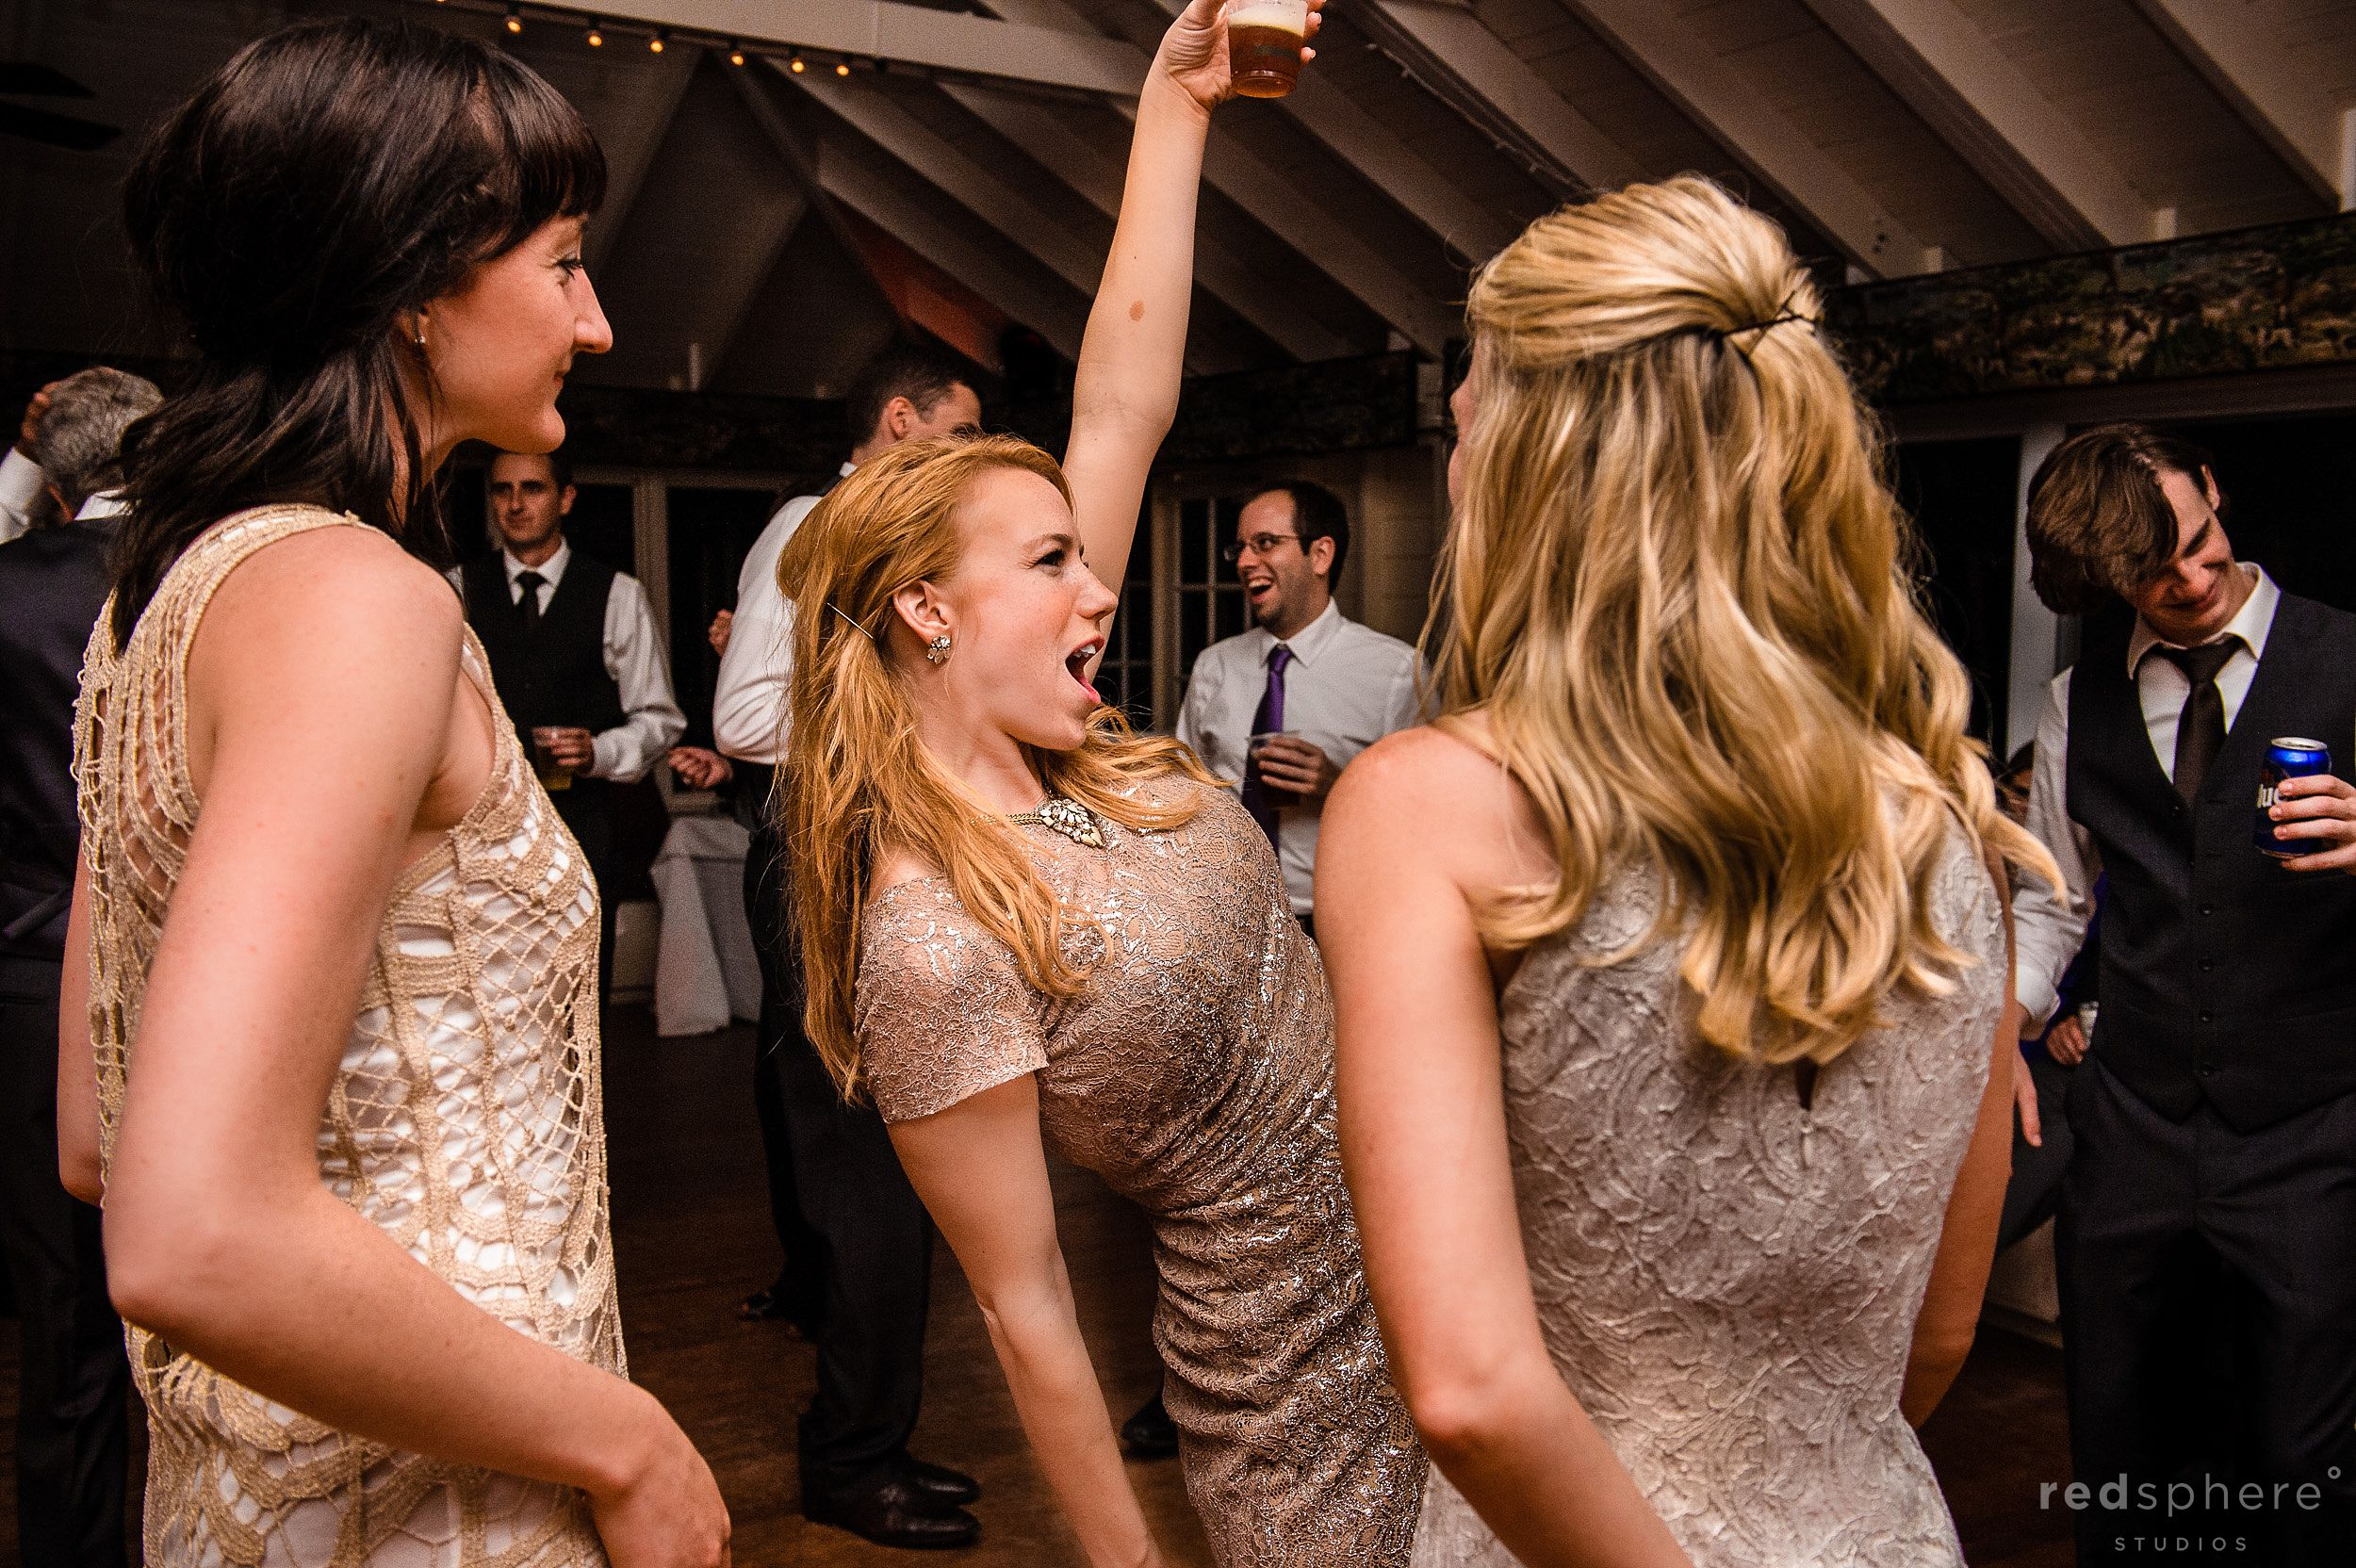 Guests Dancing and Giving Toasts at Chapel Island Wedding Reception